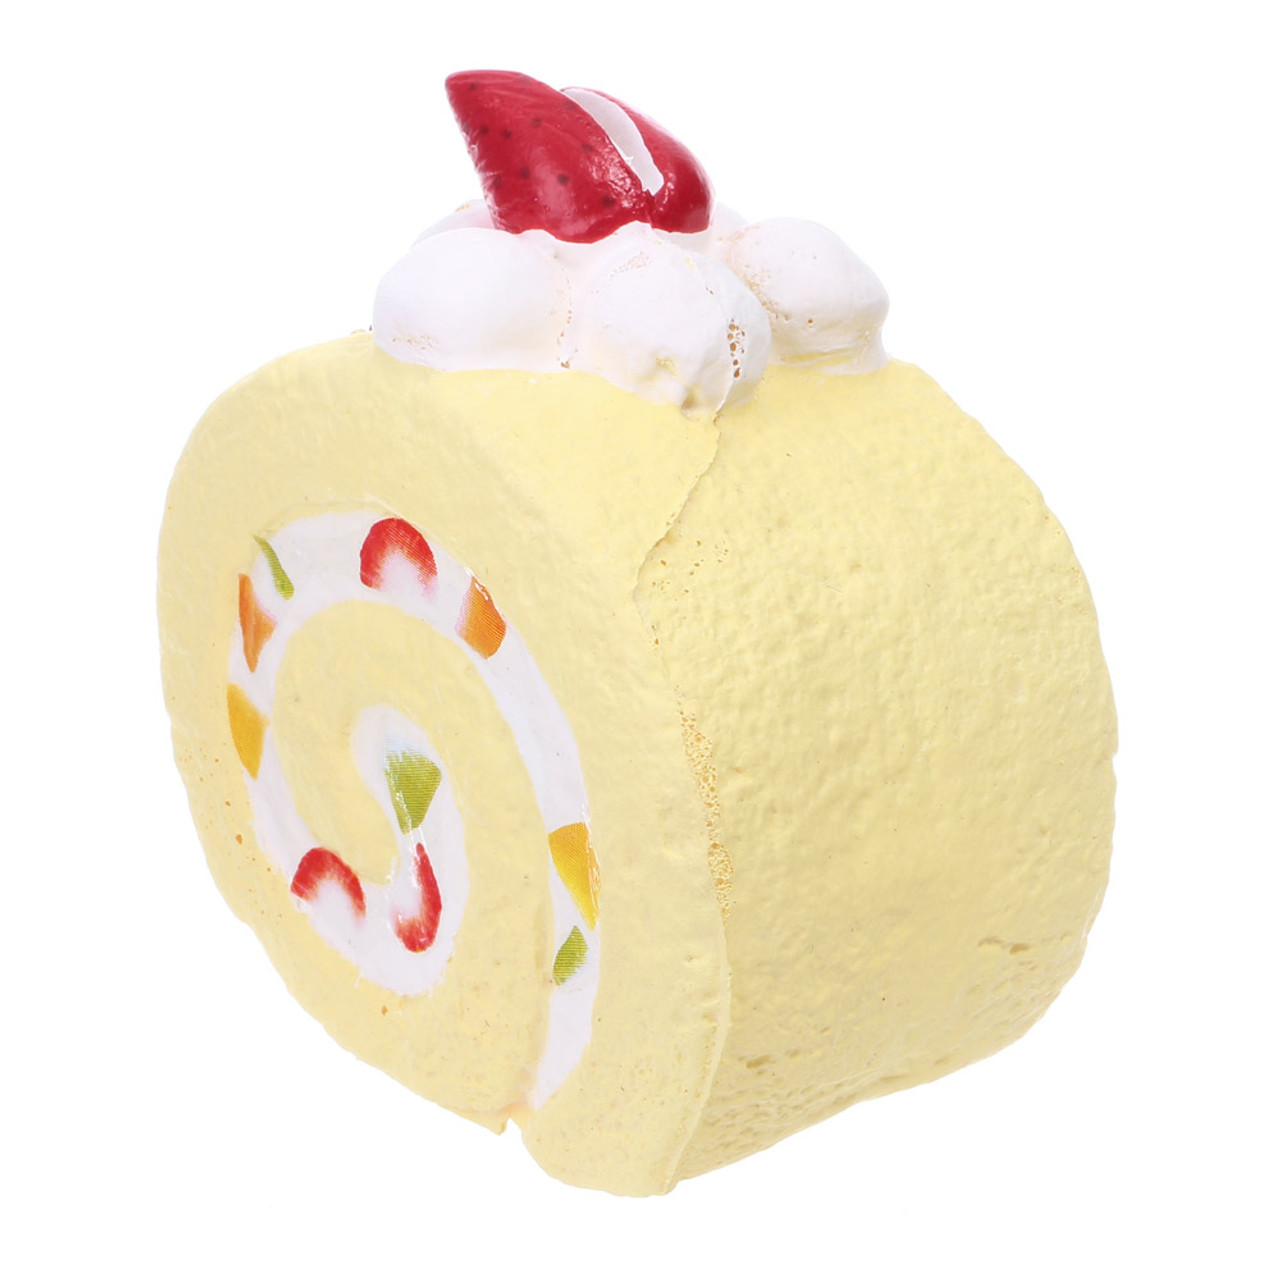 Café De N Scented Fruit Chiffon Roll Cake Squishy Toys Charms ( Side View )